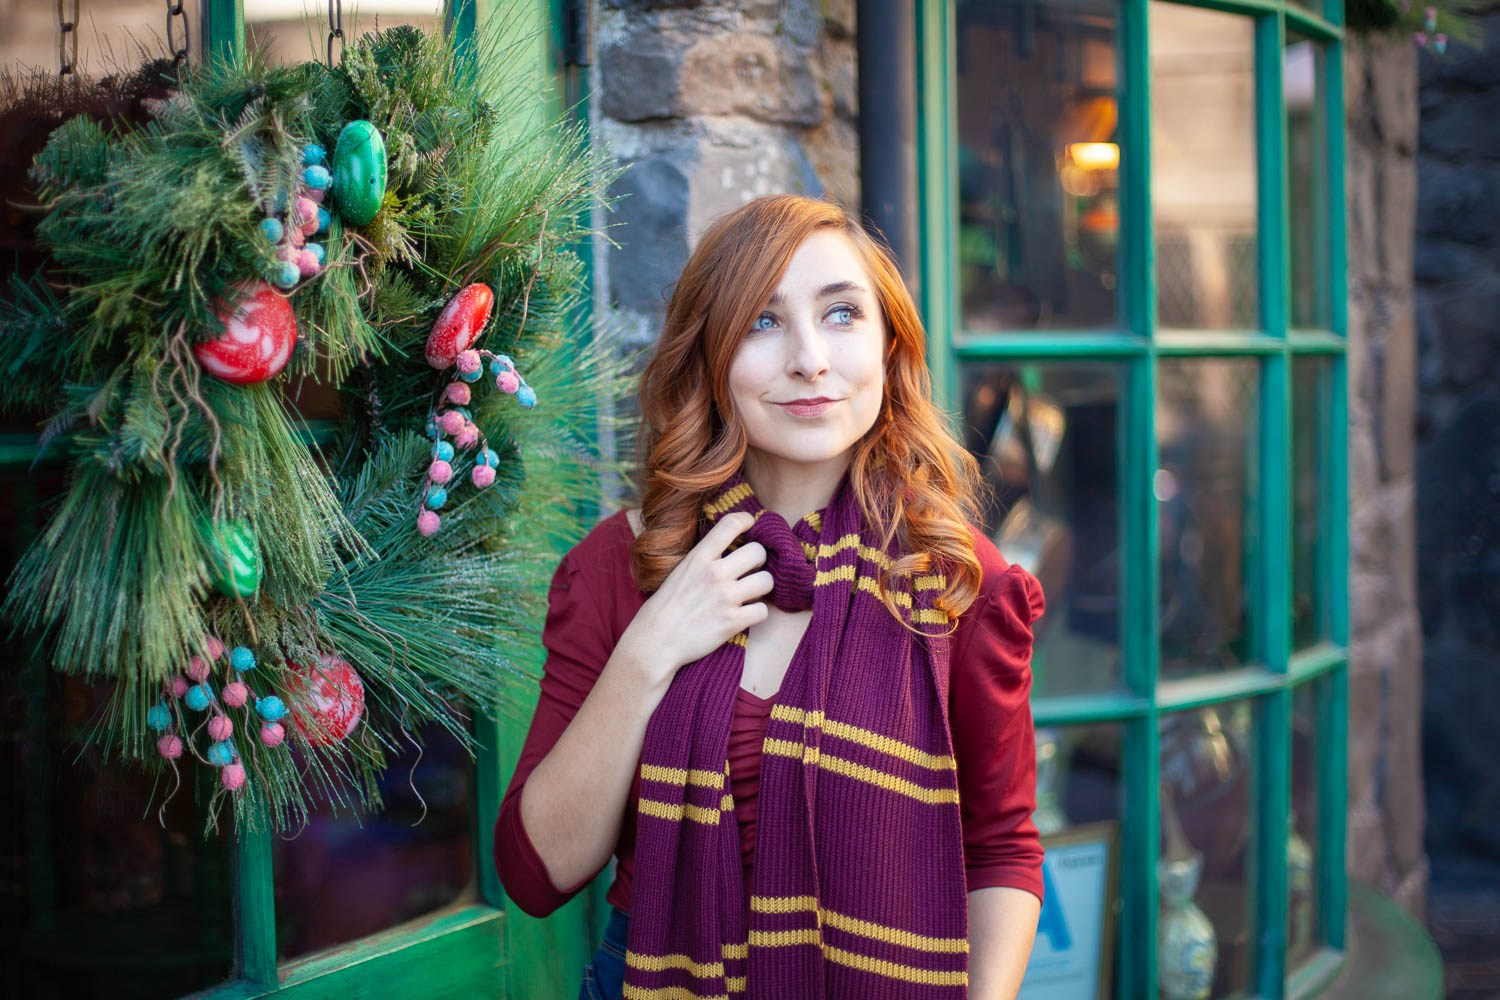 @thehealthymouse's cover photo for 'Christmas in the Wizarding World of Harry Potter is the Most Magical Holiday Experience! - The Healthy Mouse'